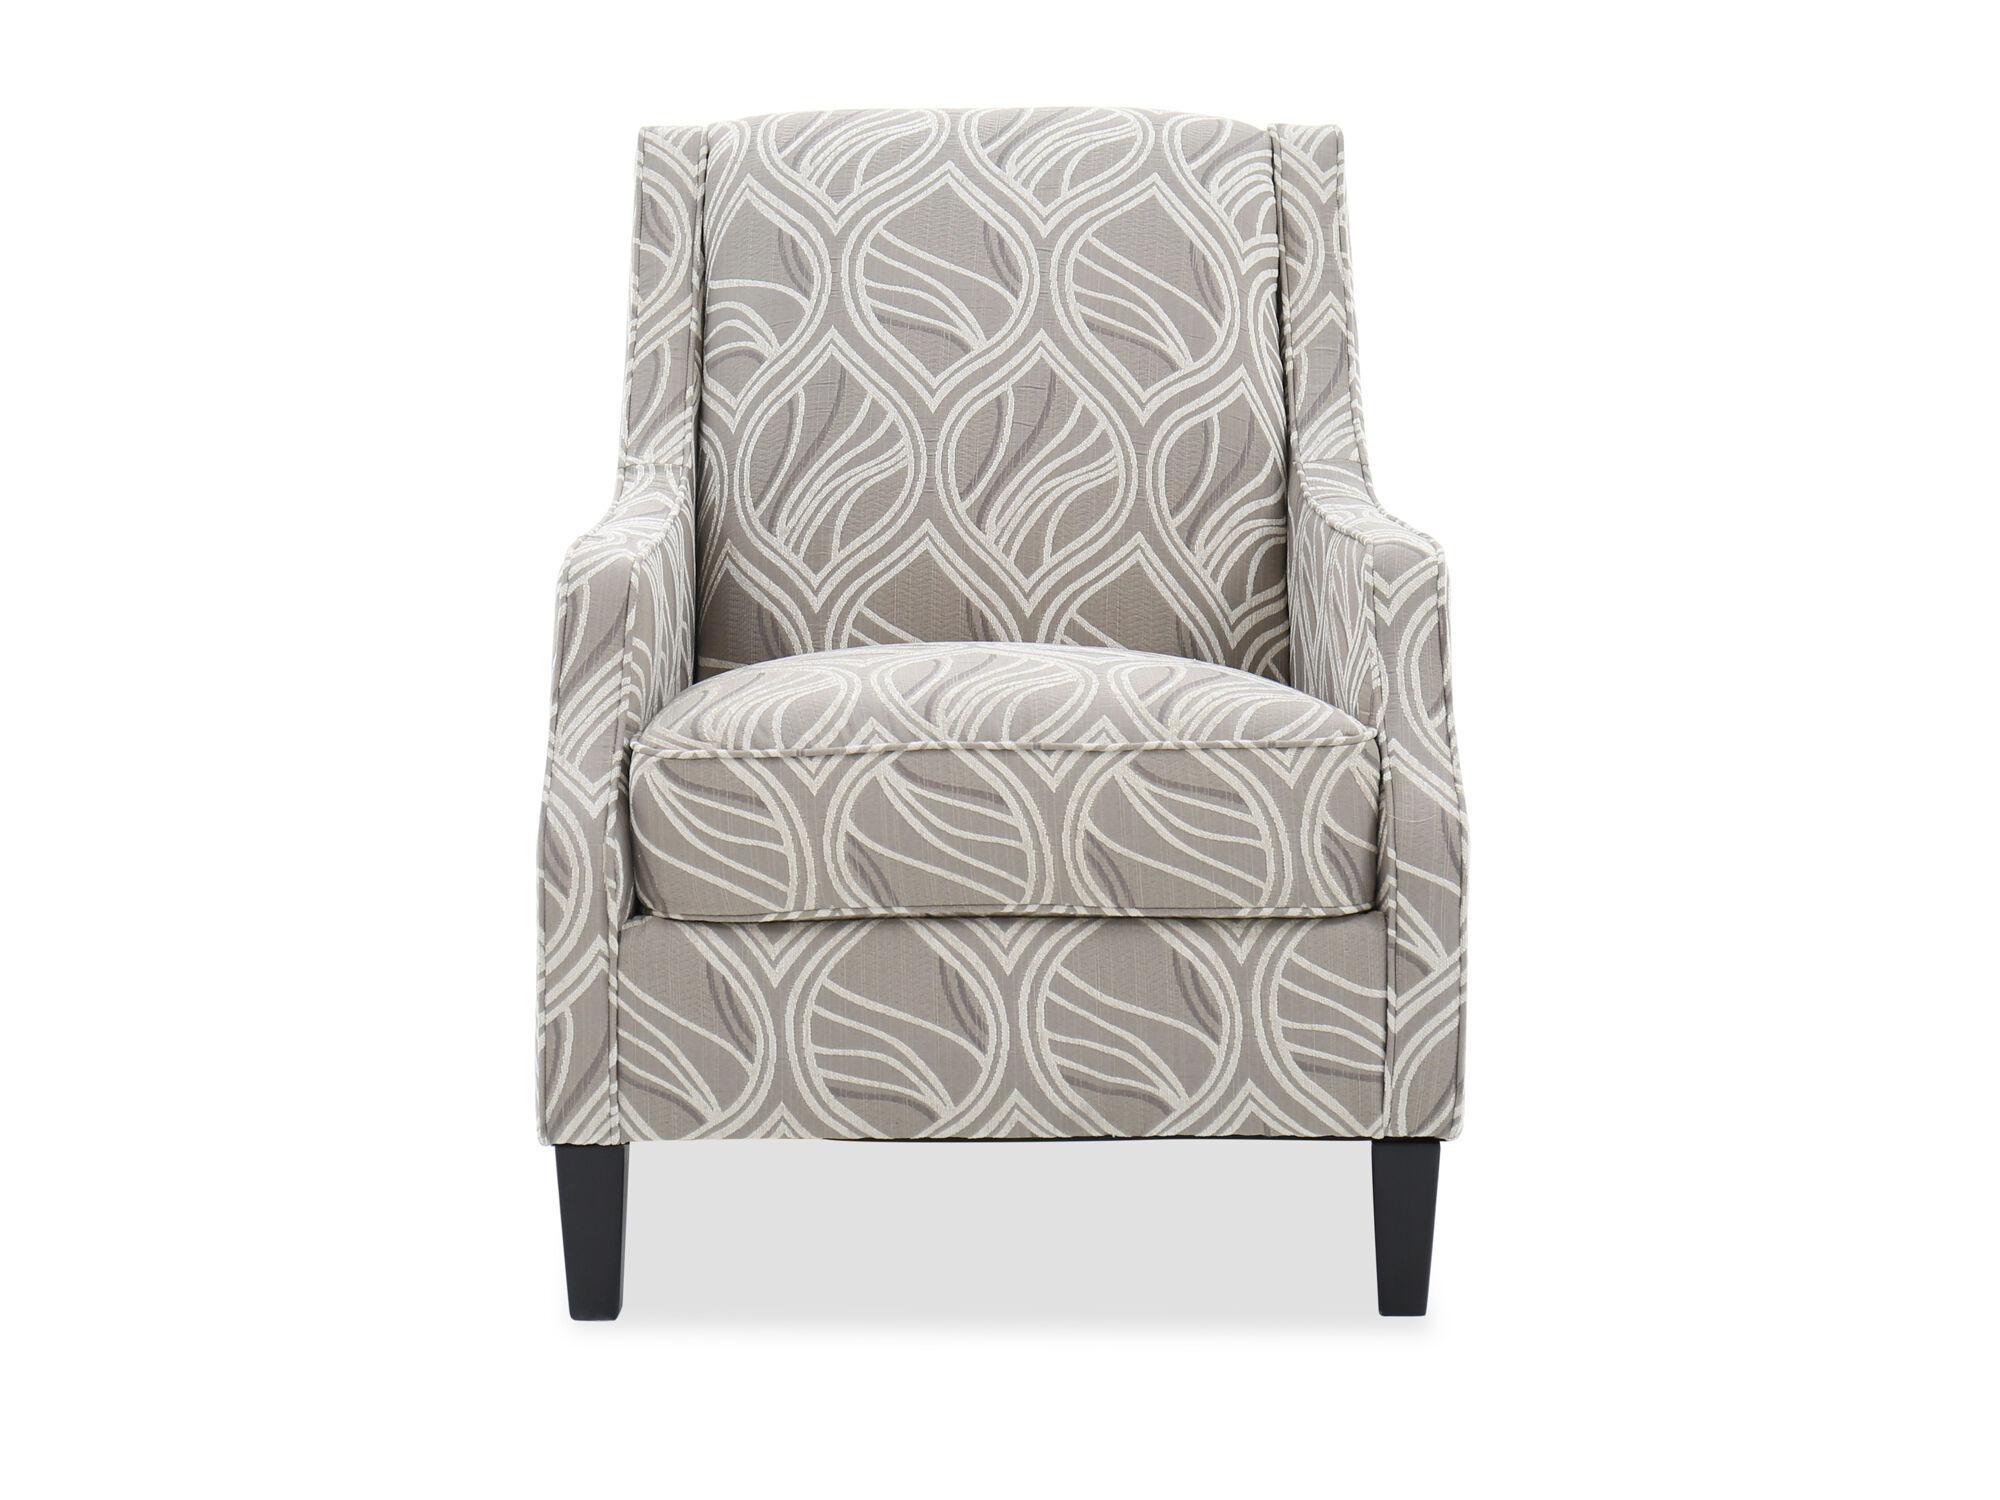 Leaf Patterned Contemporary 30 Accent Chair in Beige